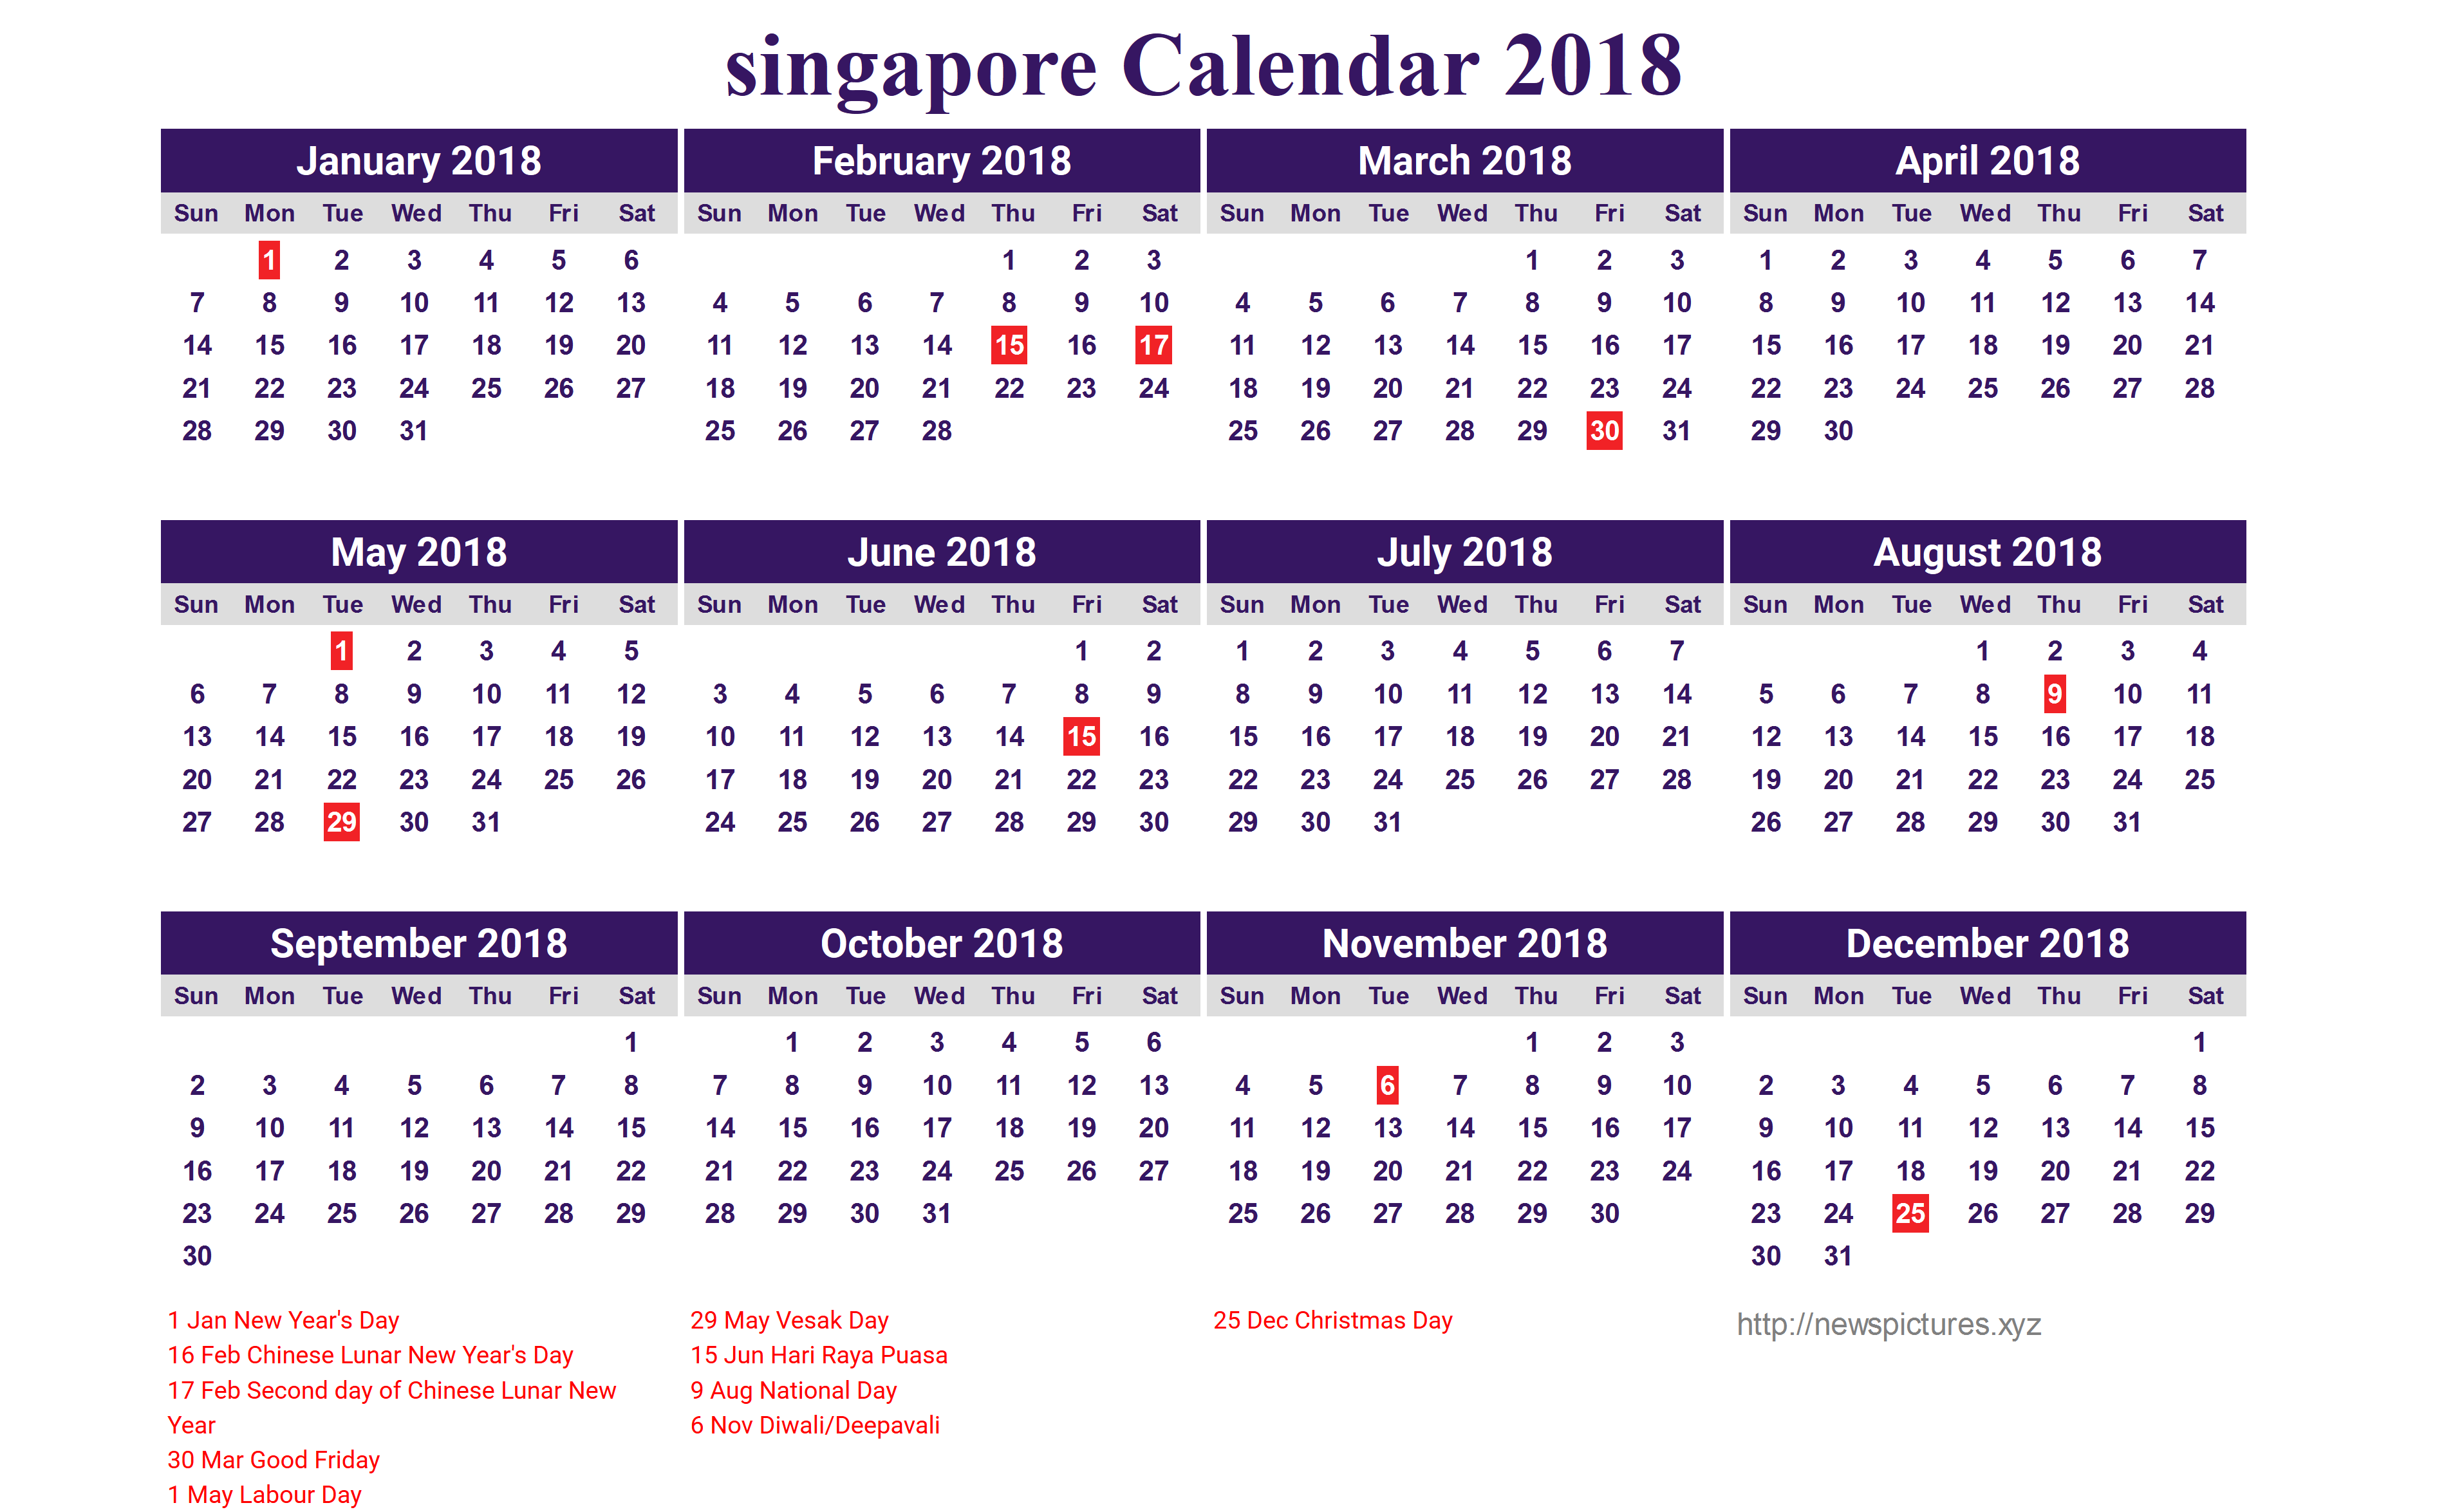 Singapore Calendar 2018 with Holidays